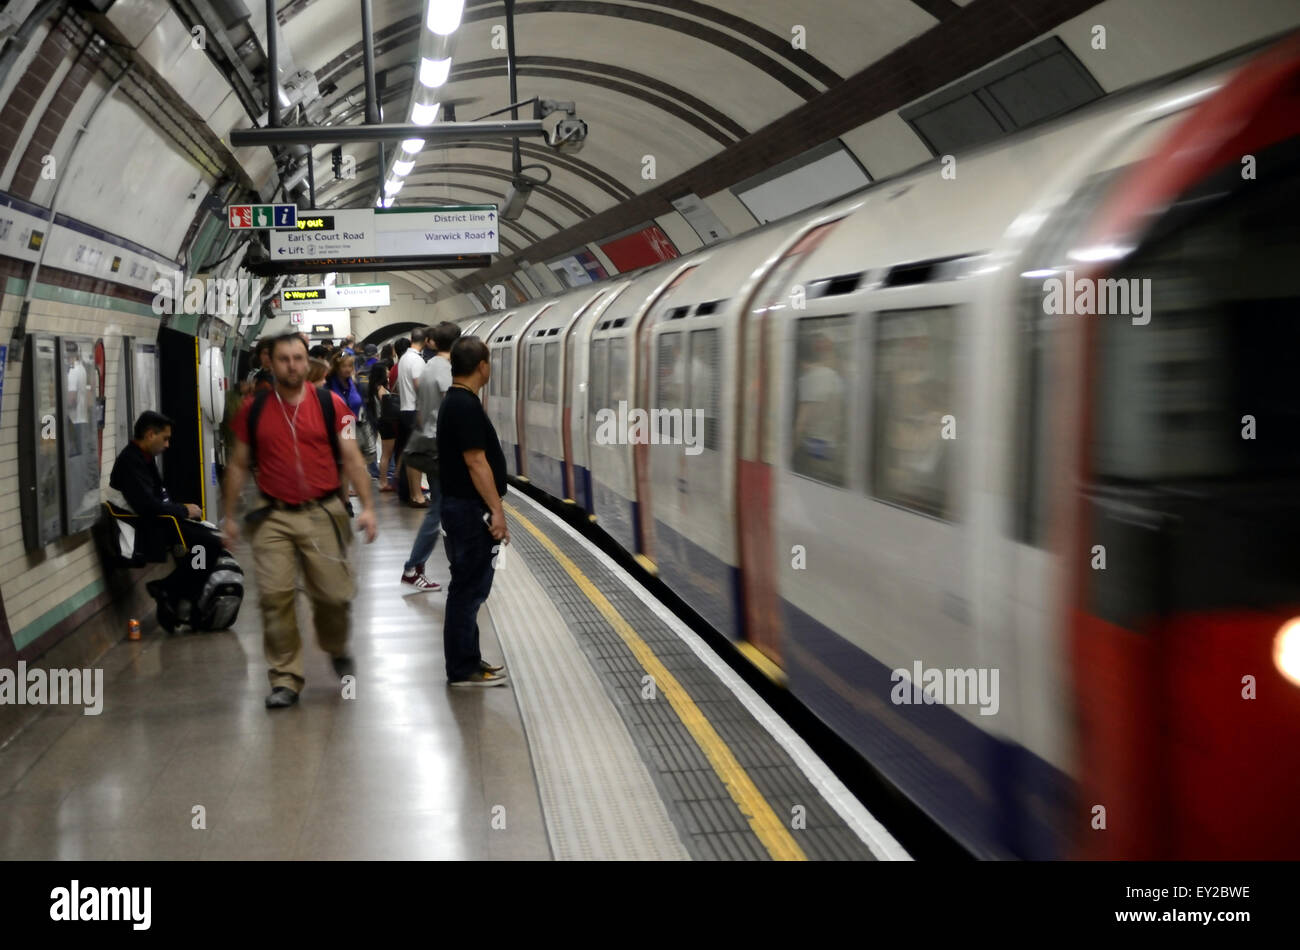 a-piccadily-line-train-arrives-at-earls-court-london-underground-station-EY2BWE.jpg